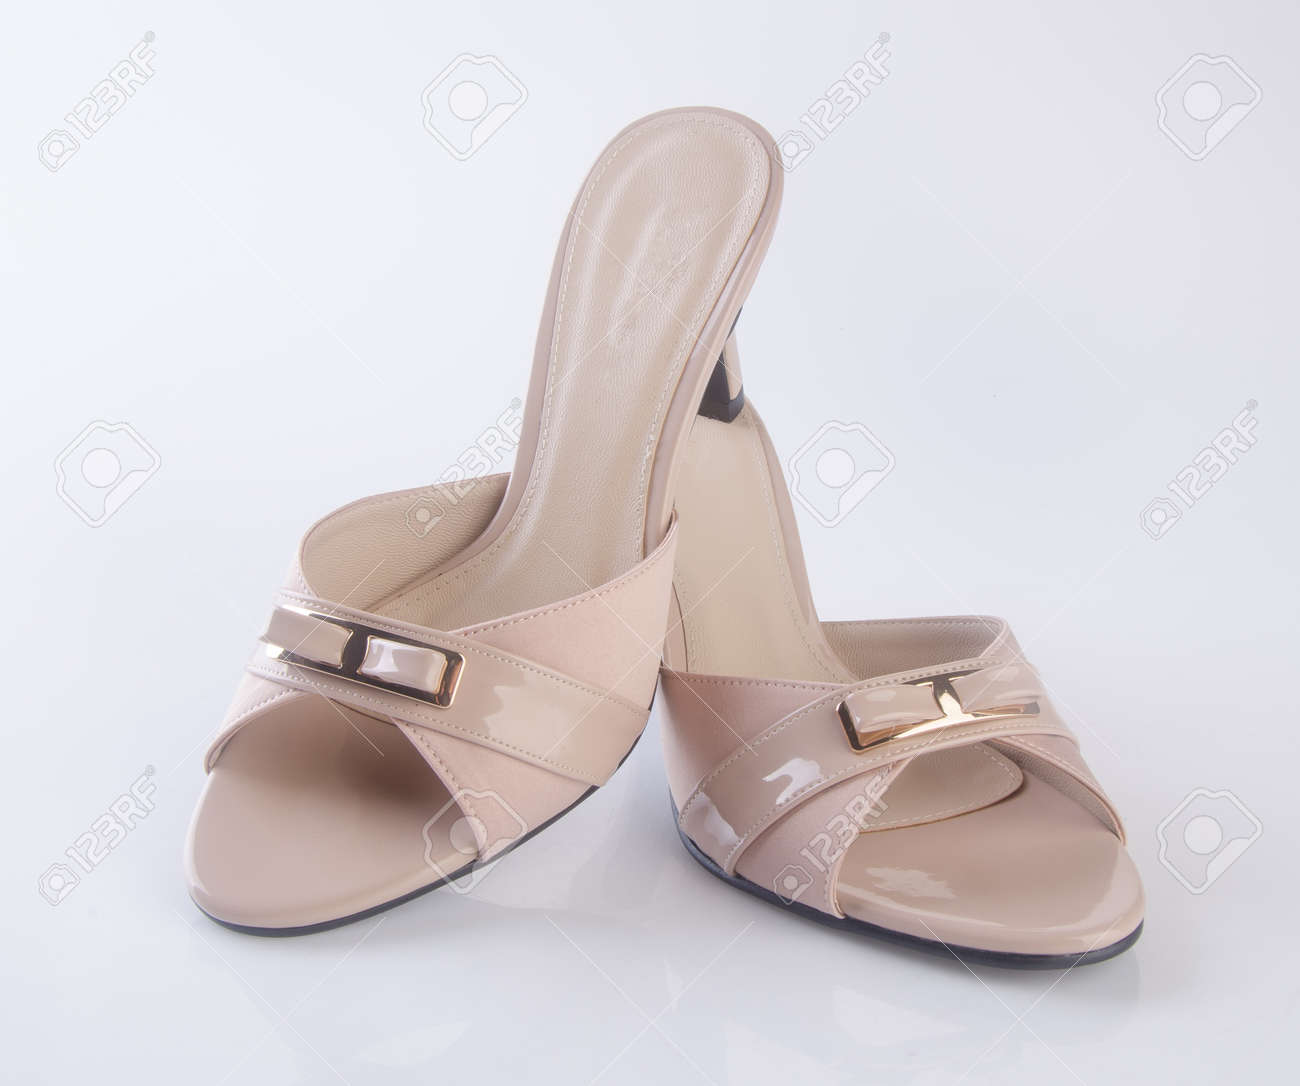 sleek buy sale well known Shoe Or Brown Colour Casual Woman Shoes On A Background Stock ...